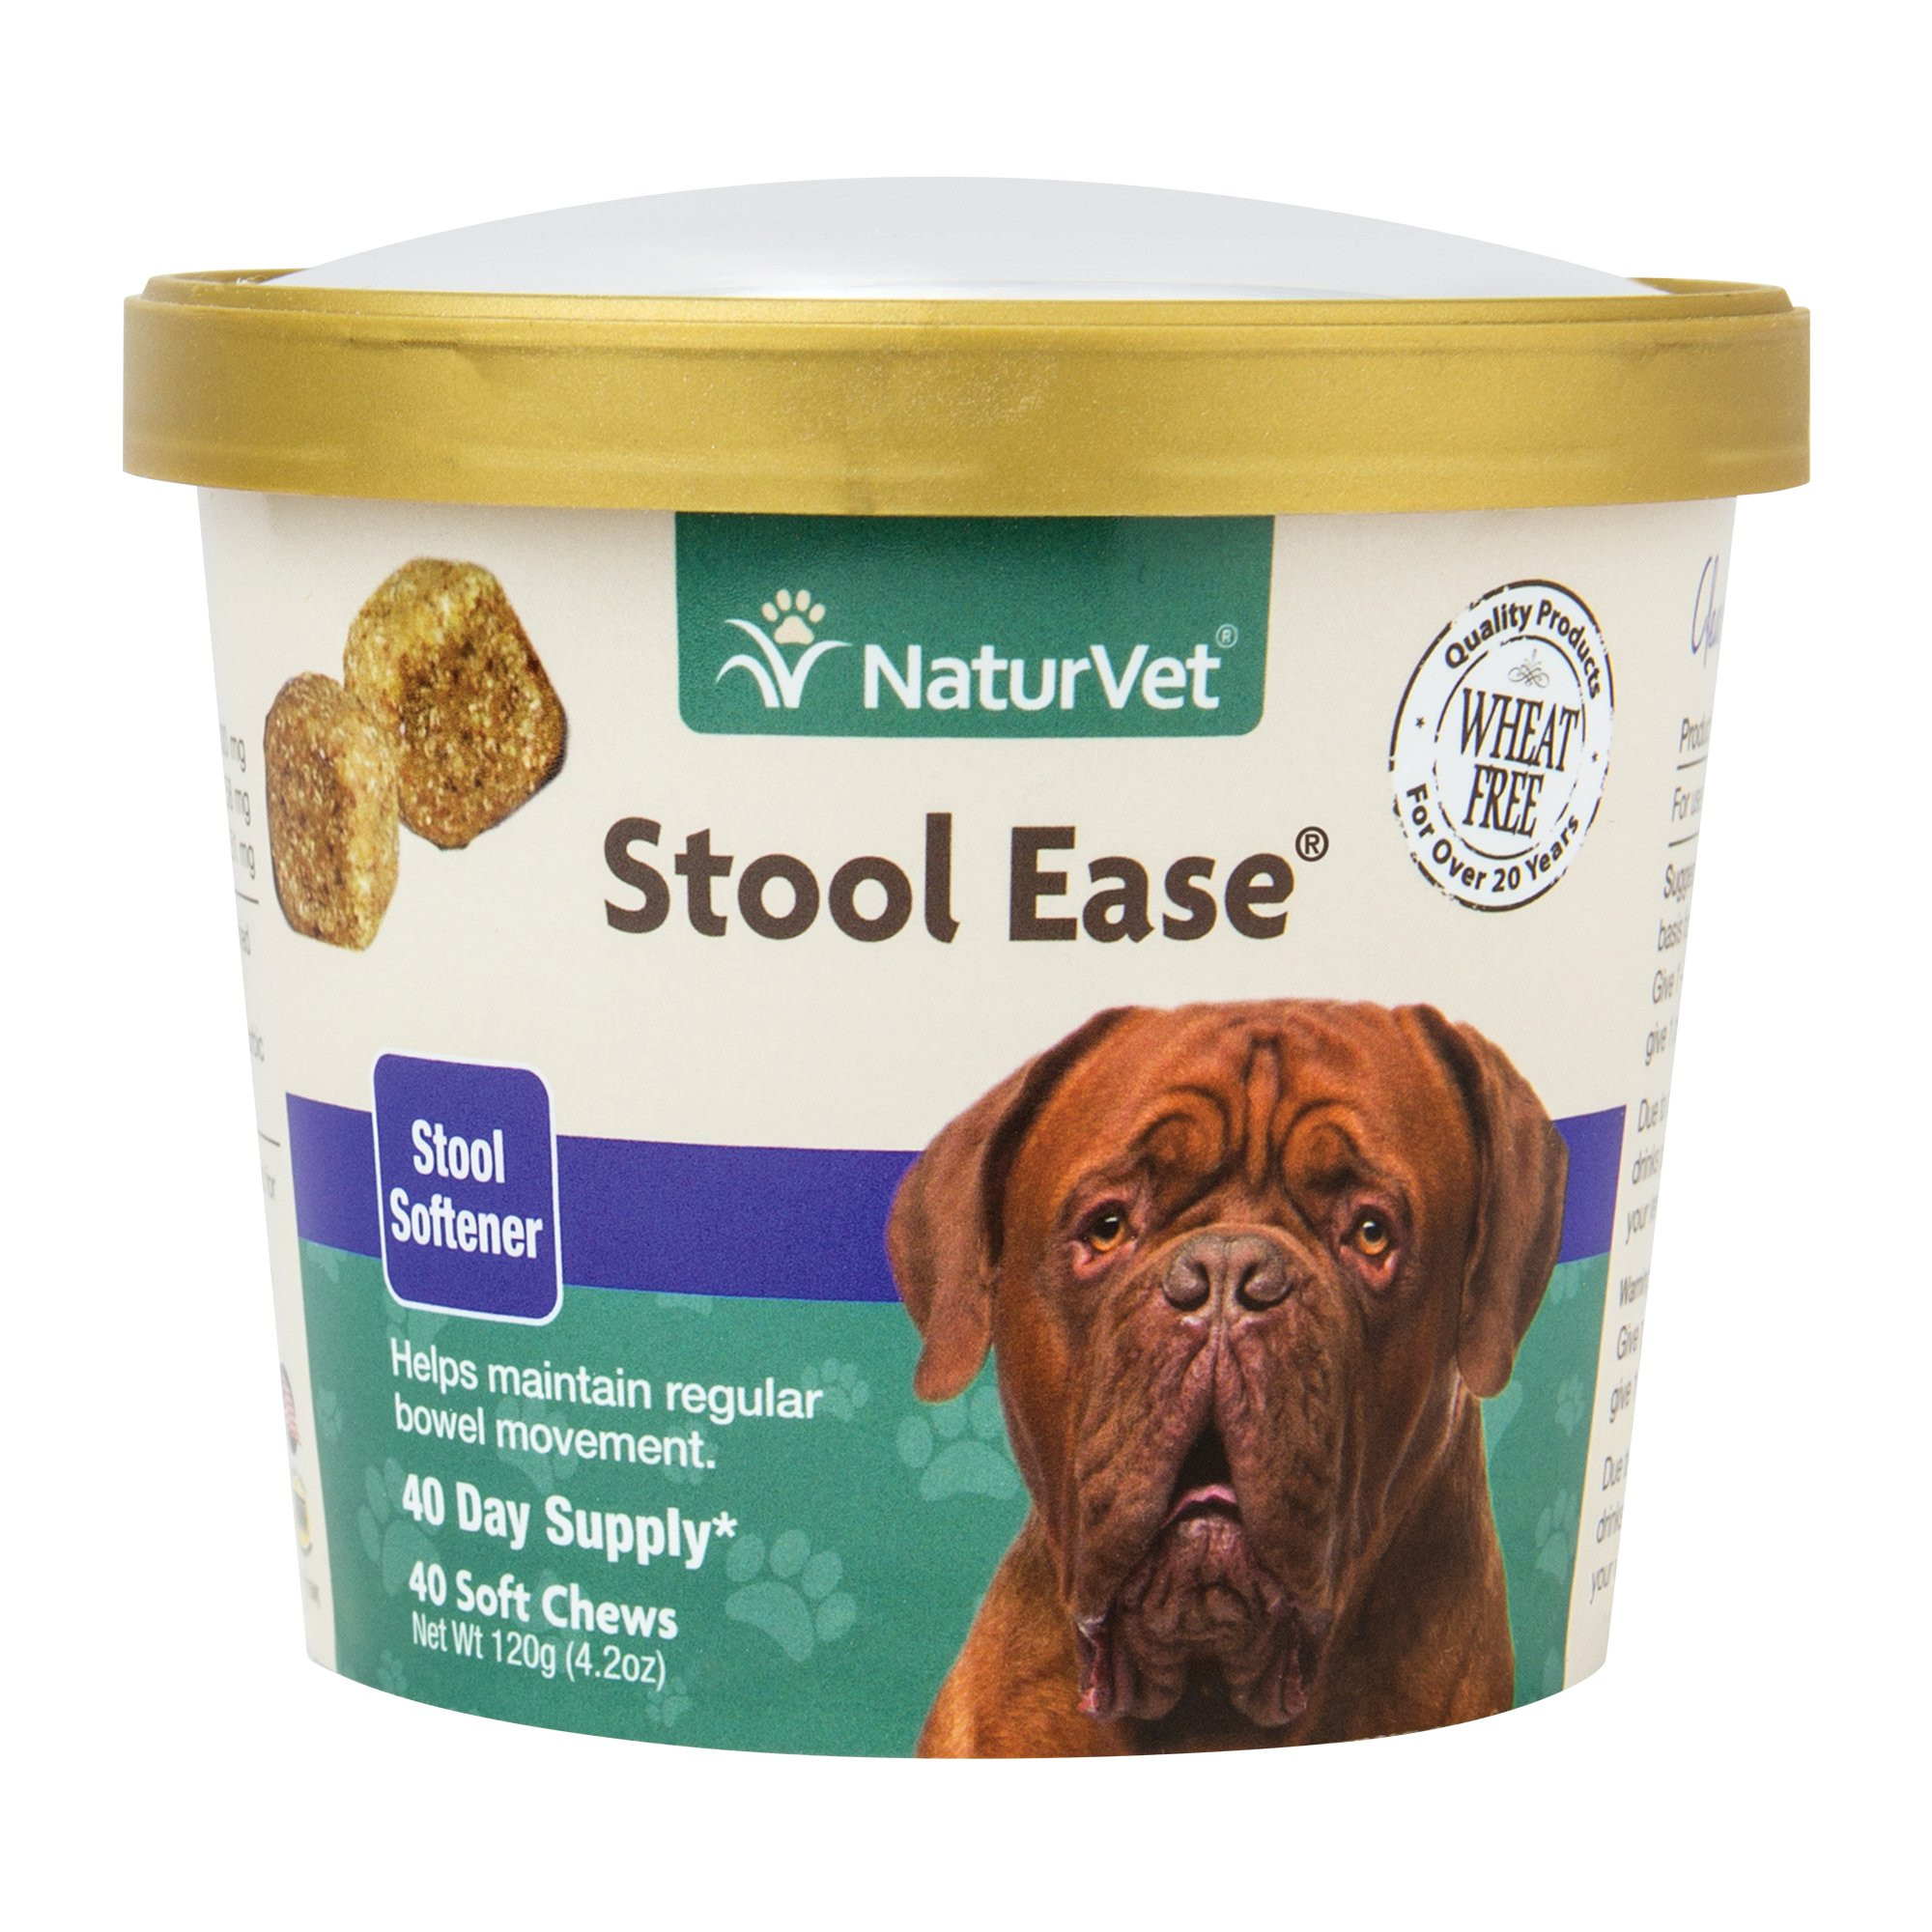 Naturvet Stool Ease Stool Softener Dog Soft Chews Petco